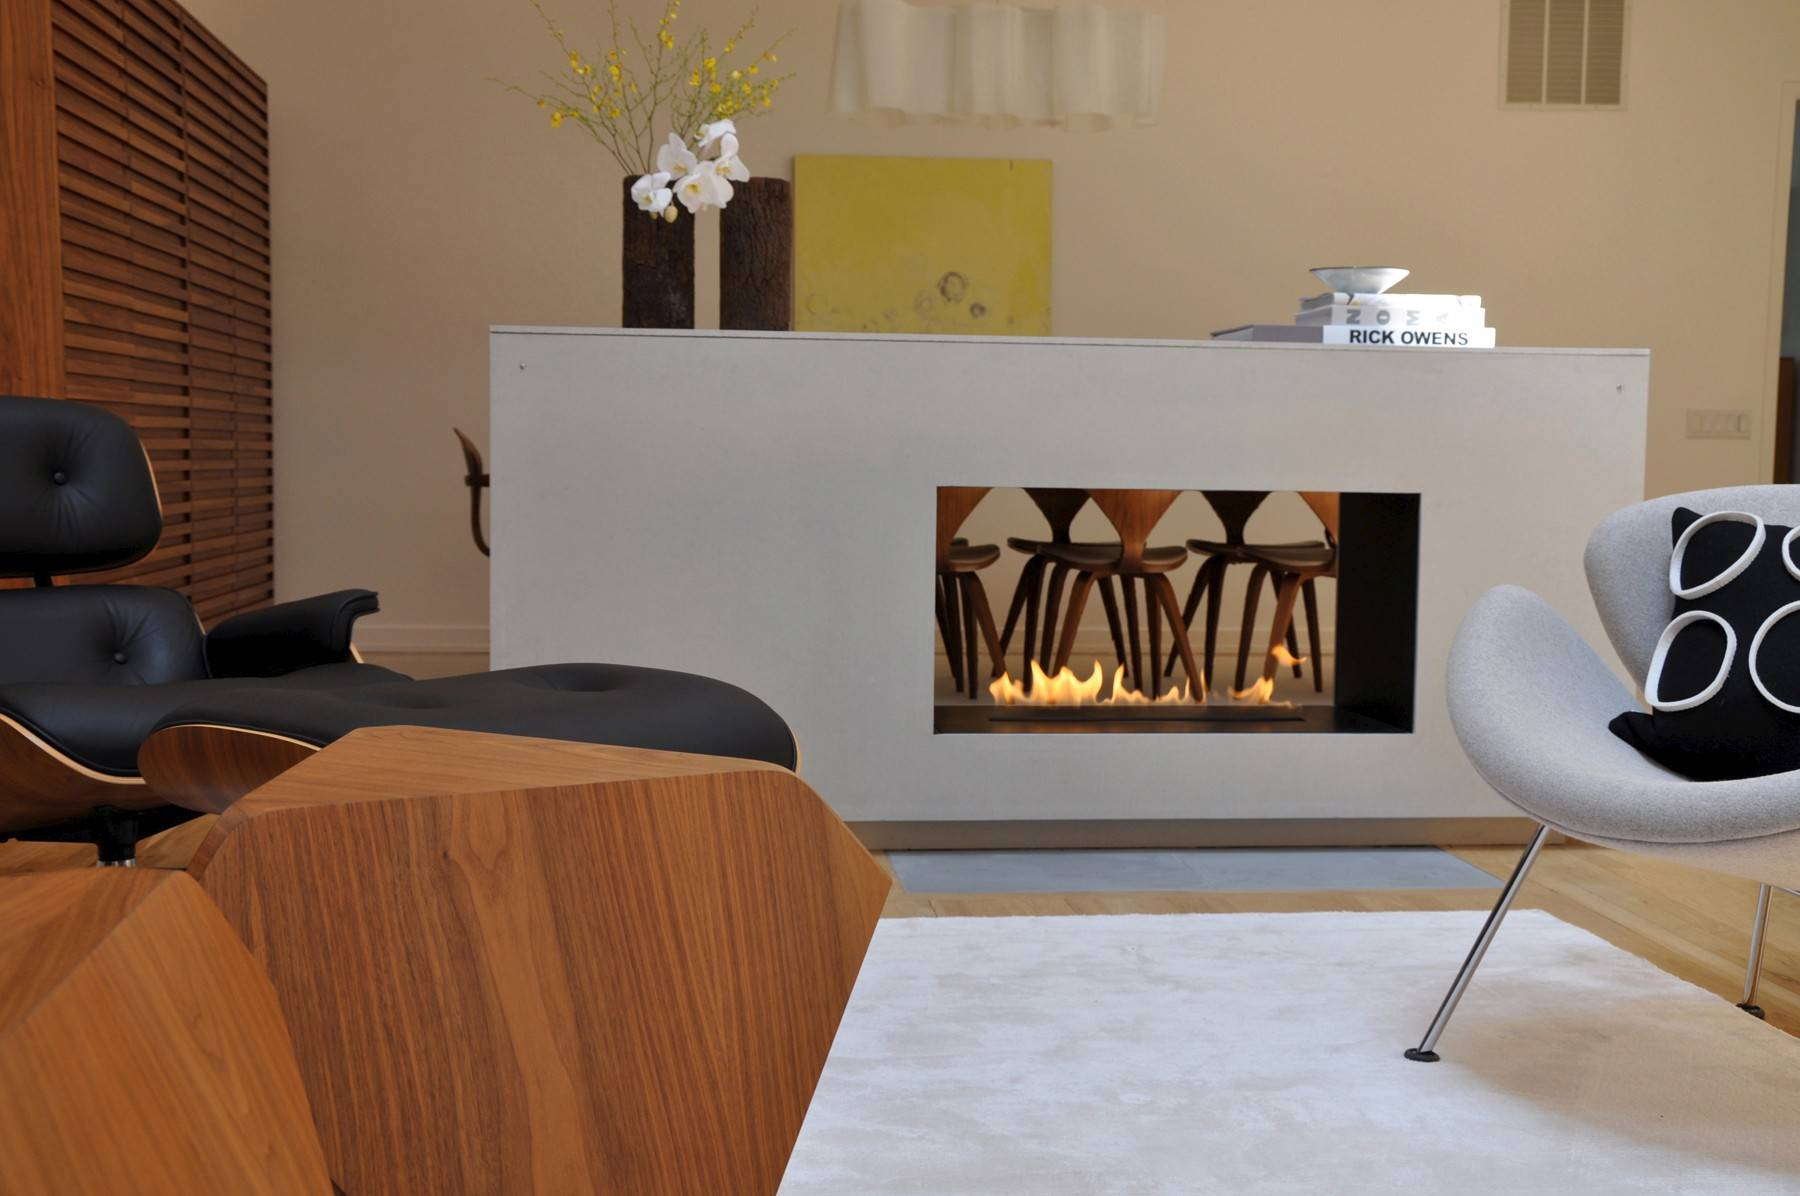 With new elements available on the market today, we can make a simple cabinet function like the fireplace of yore.